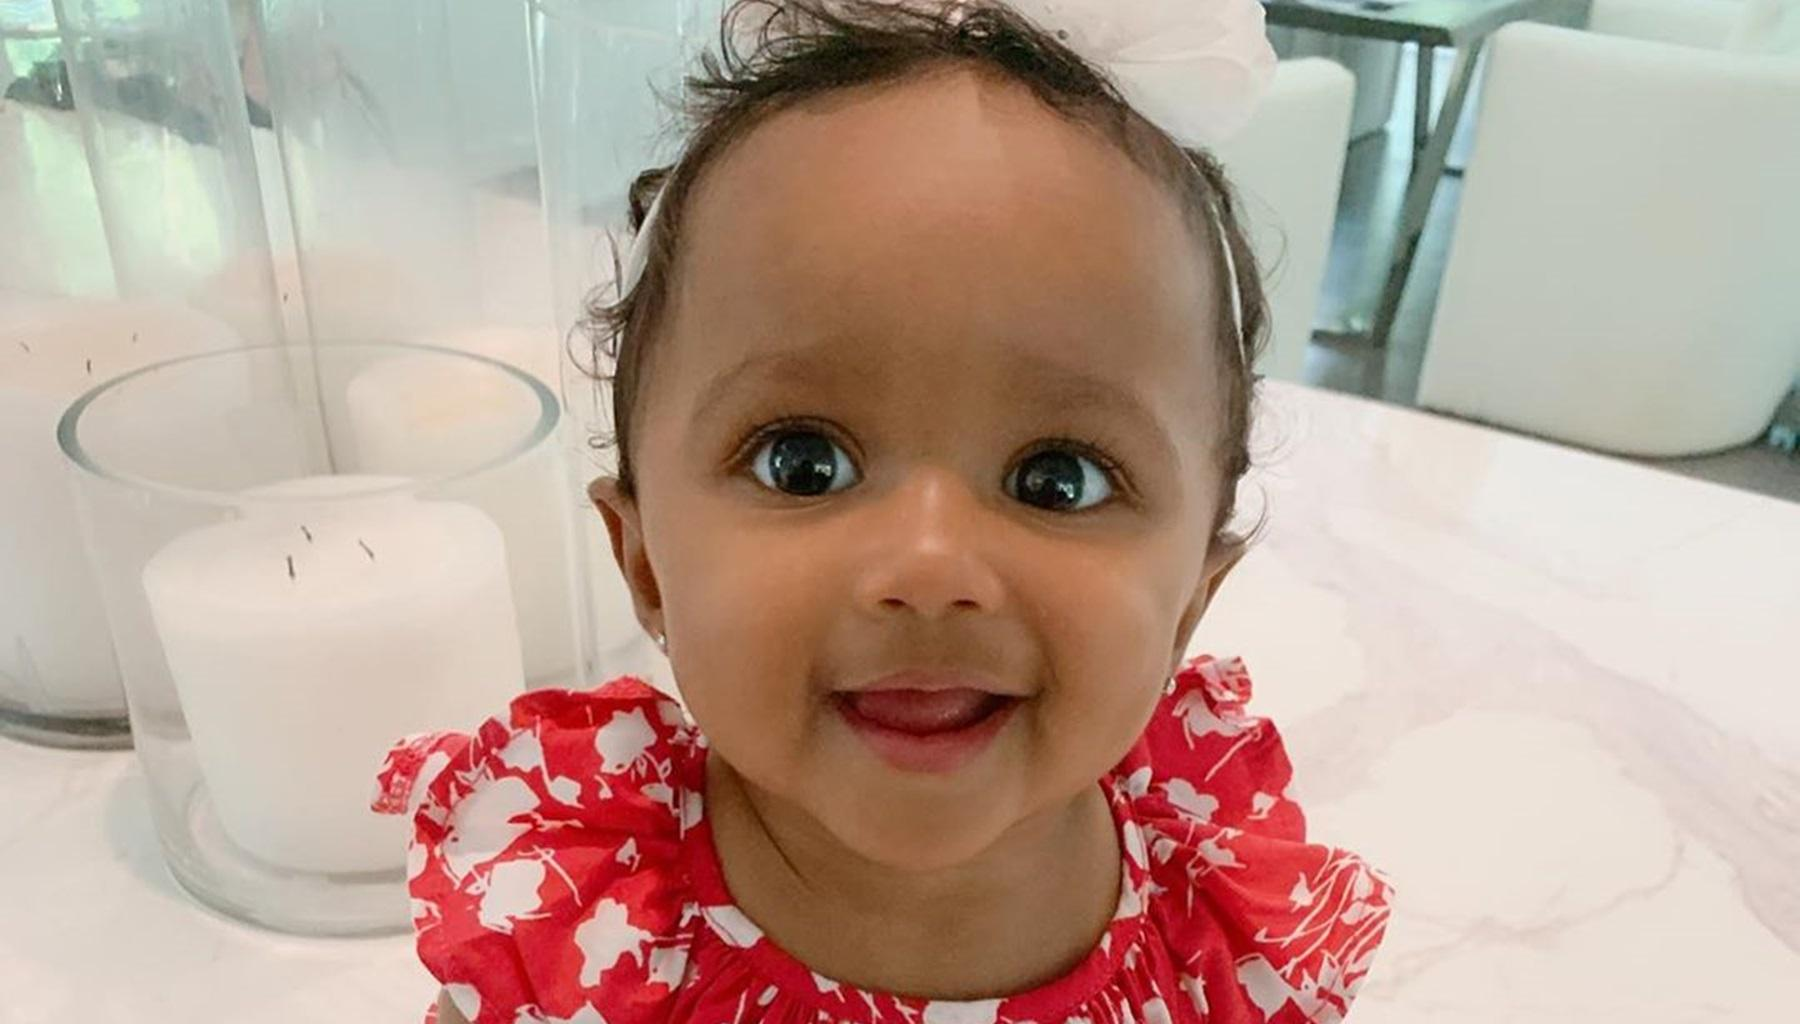 Kenya Moore's Impromptu Photoshoot Featuring Real Life Doll, Brooklyn Daly Will Make Your Day